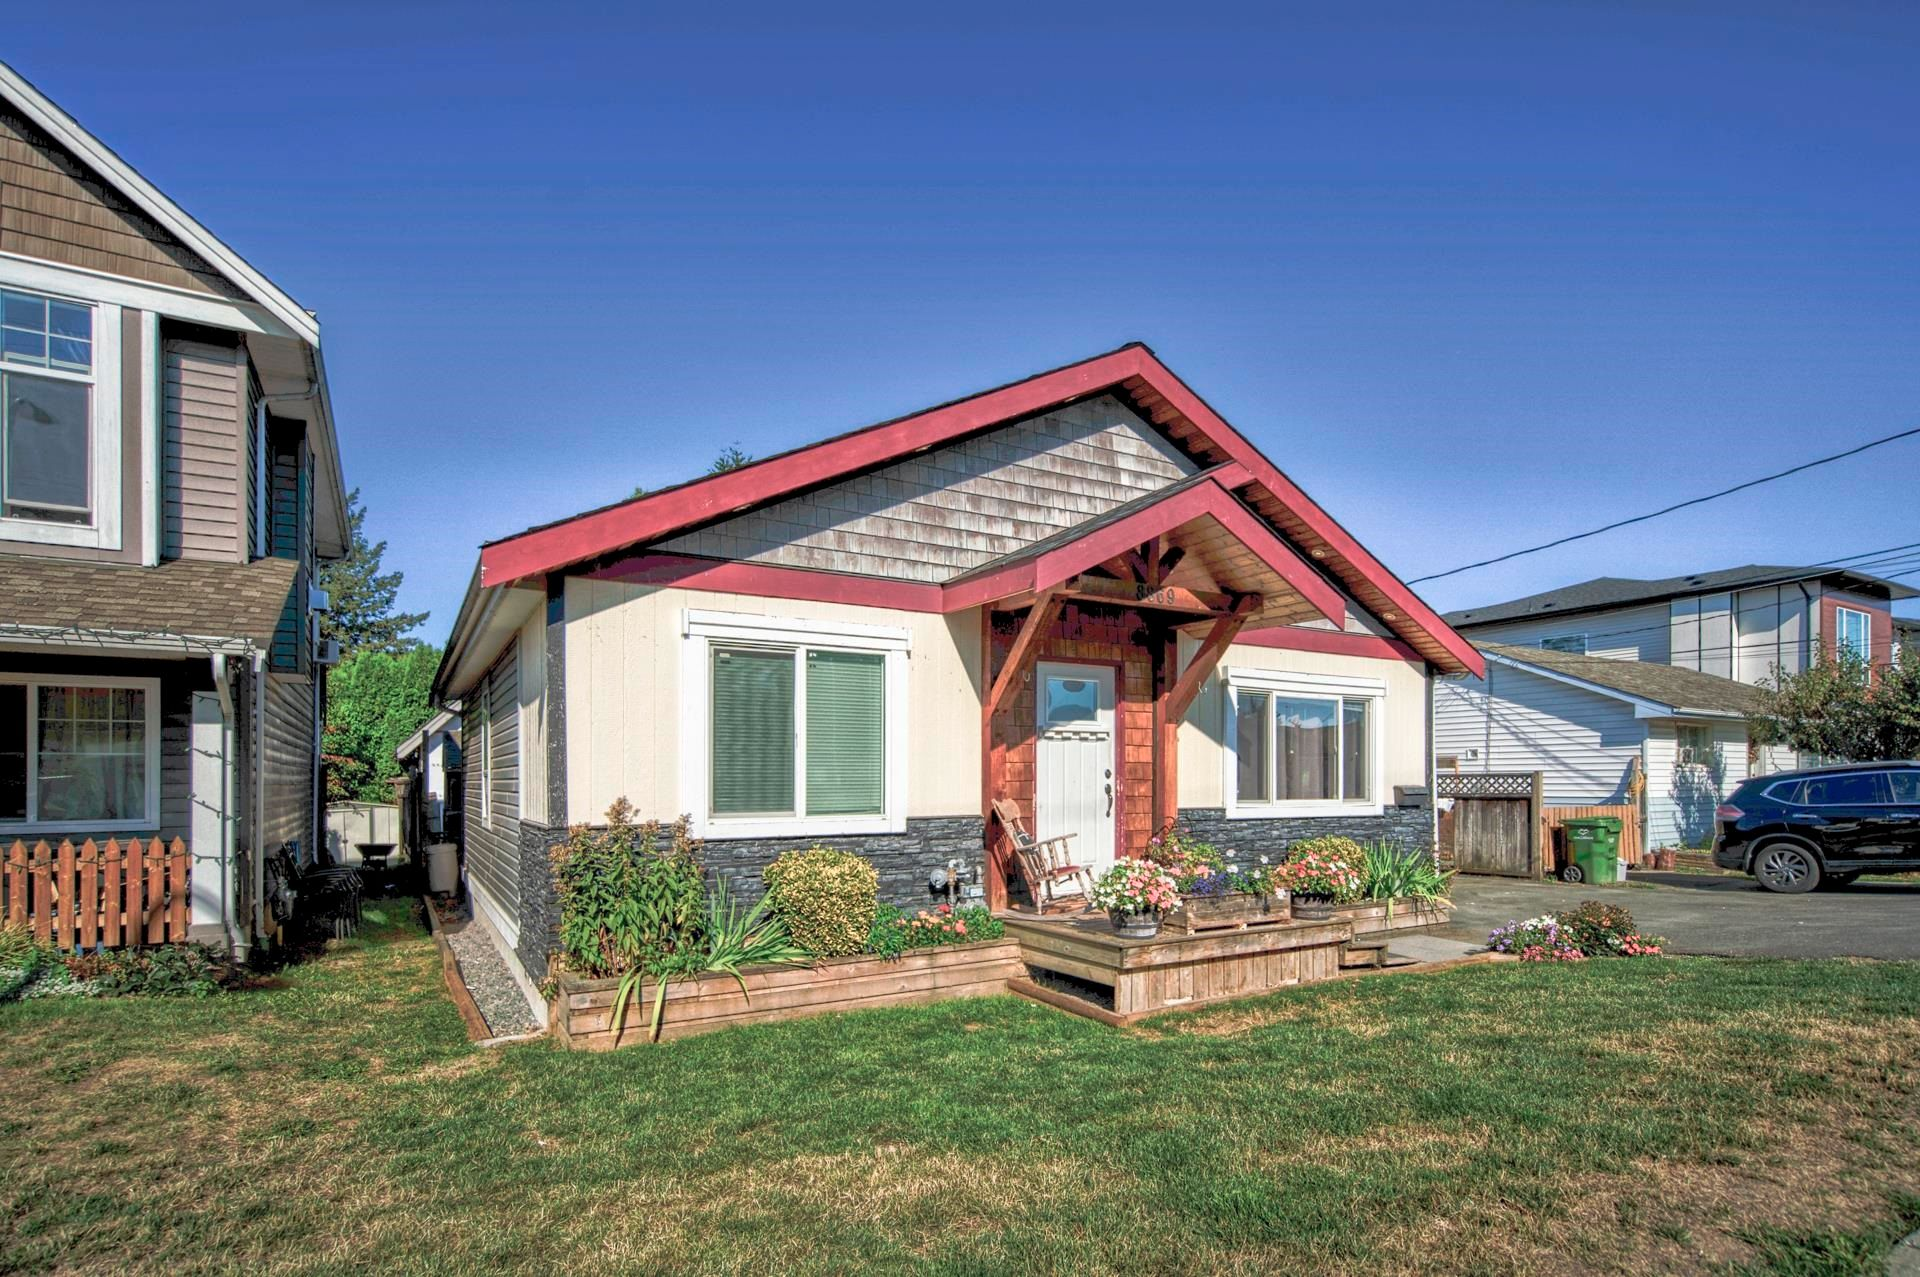 Main Photo: 8869 EDWARD Street in Chilliwack: Chilliwack W Young-Well House for sale : MLS®# R2614844